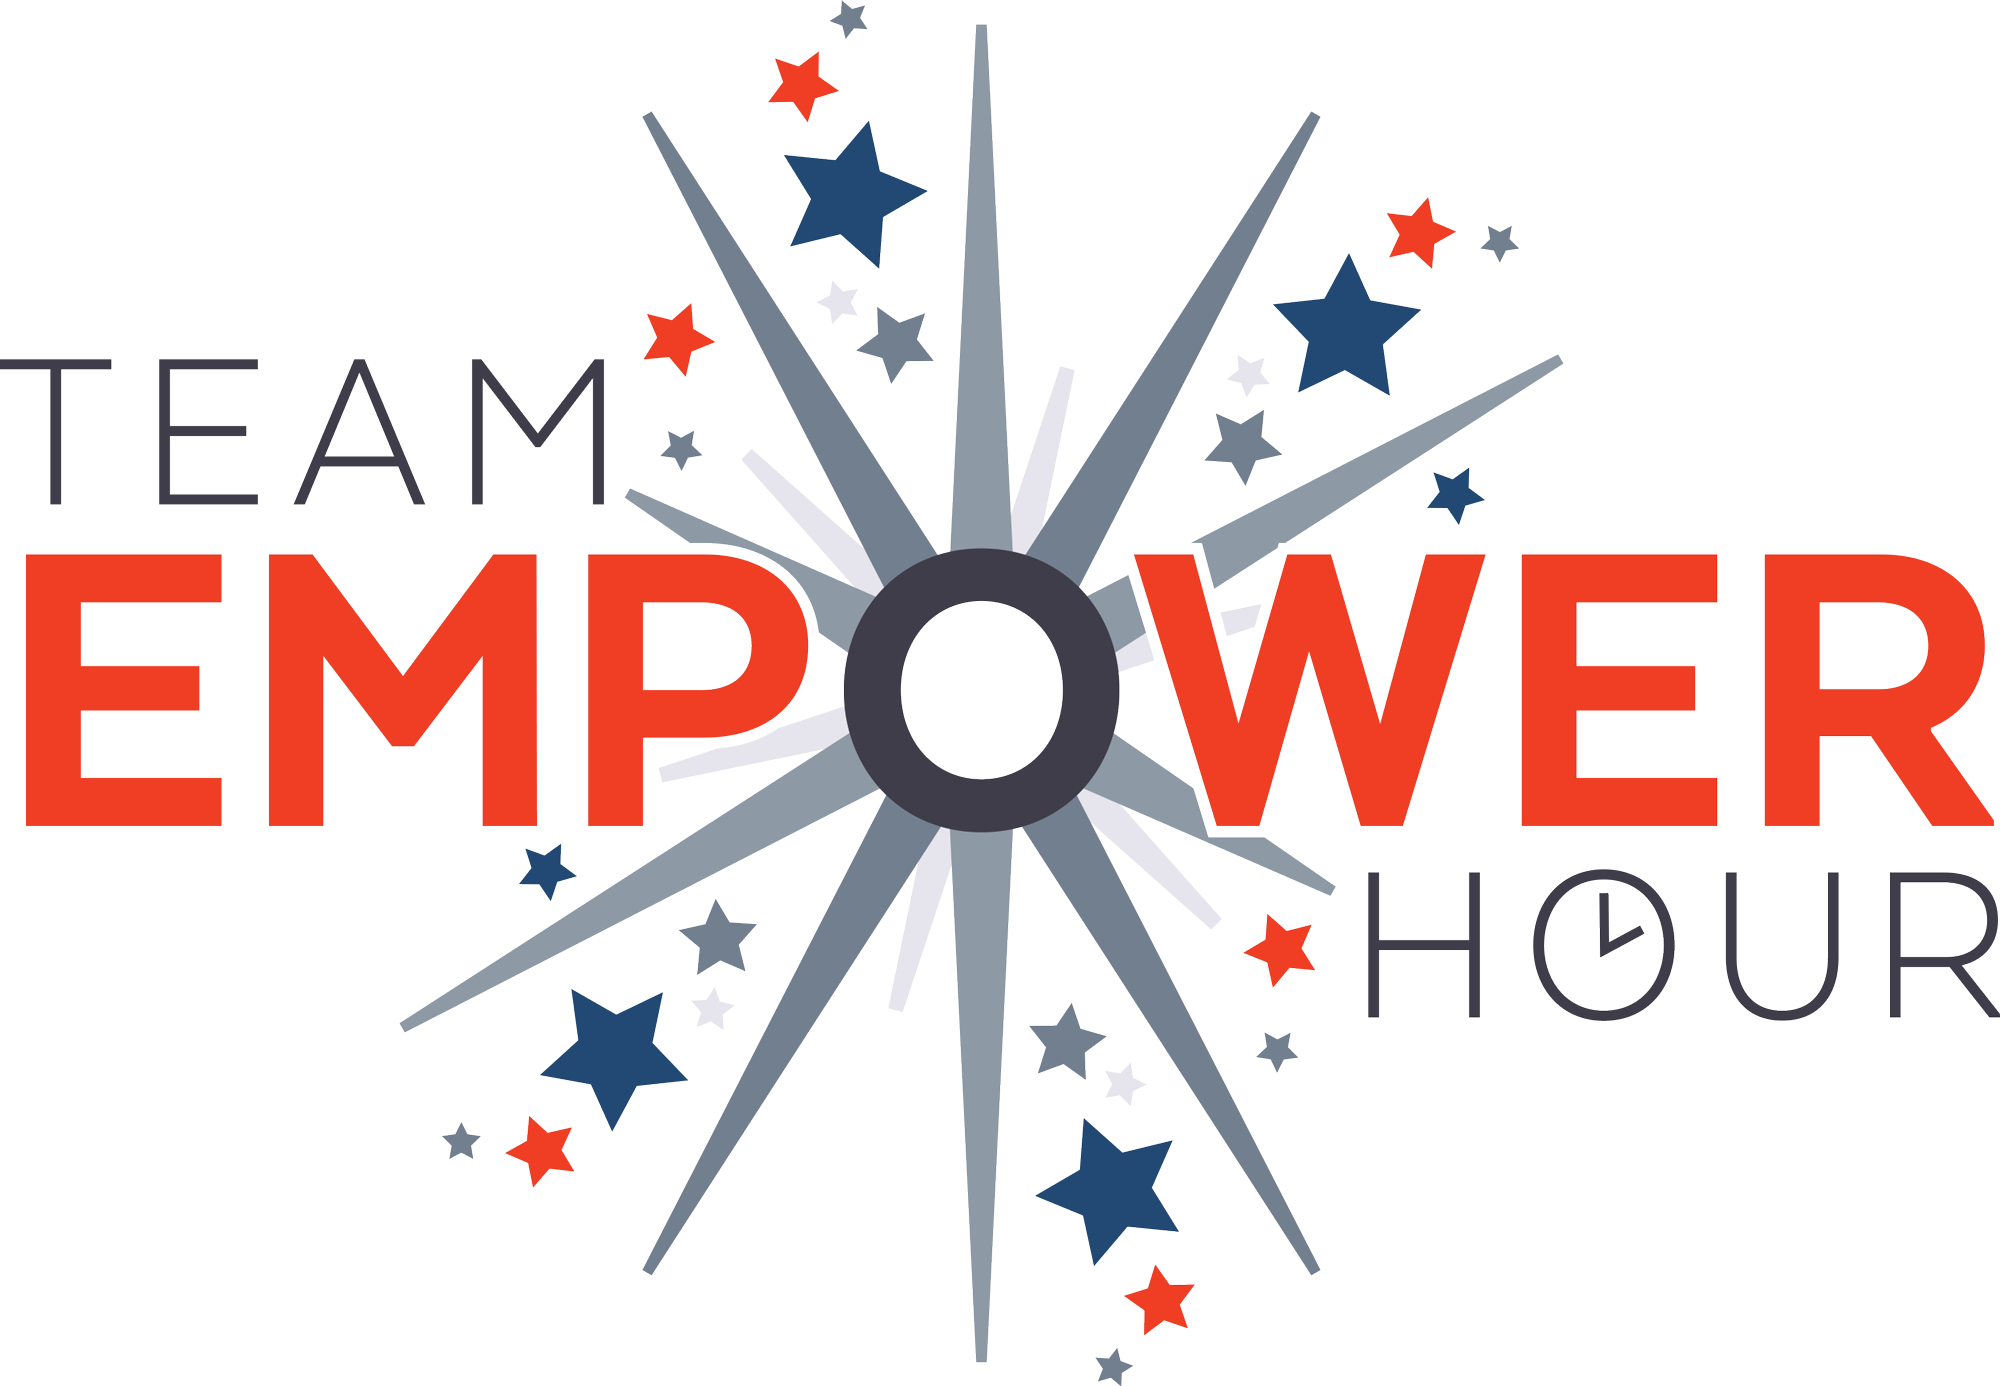 Team-Empower-Hour-Primary-Logo-COLOR.png